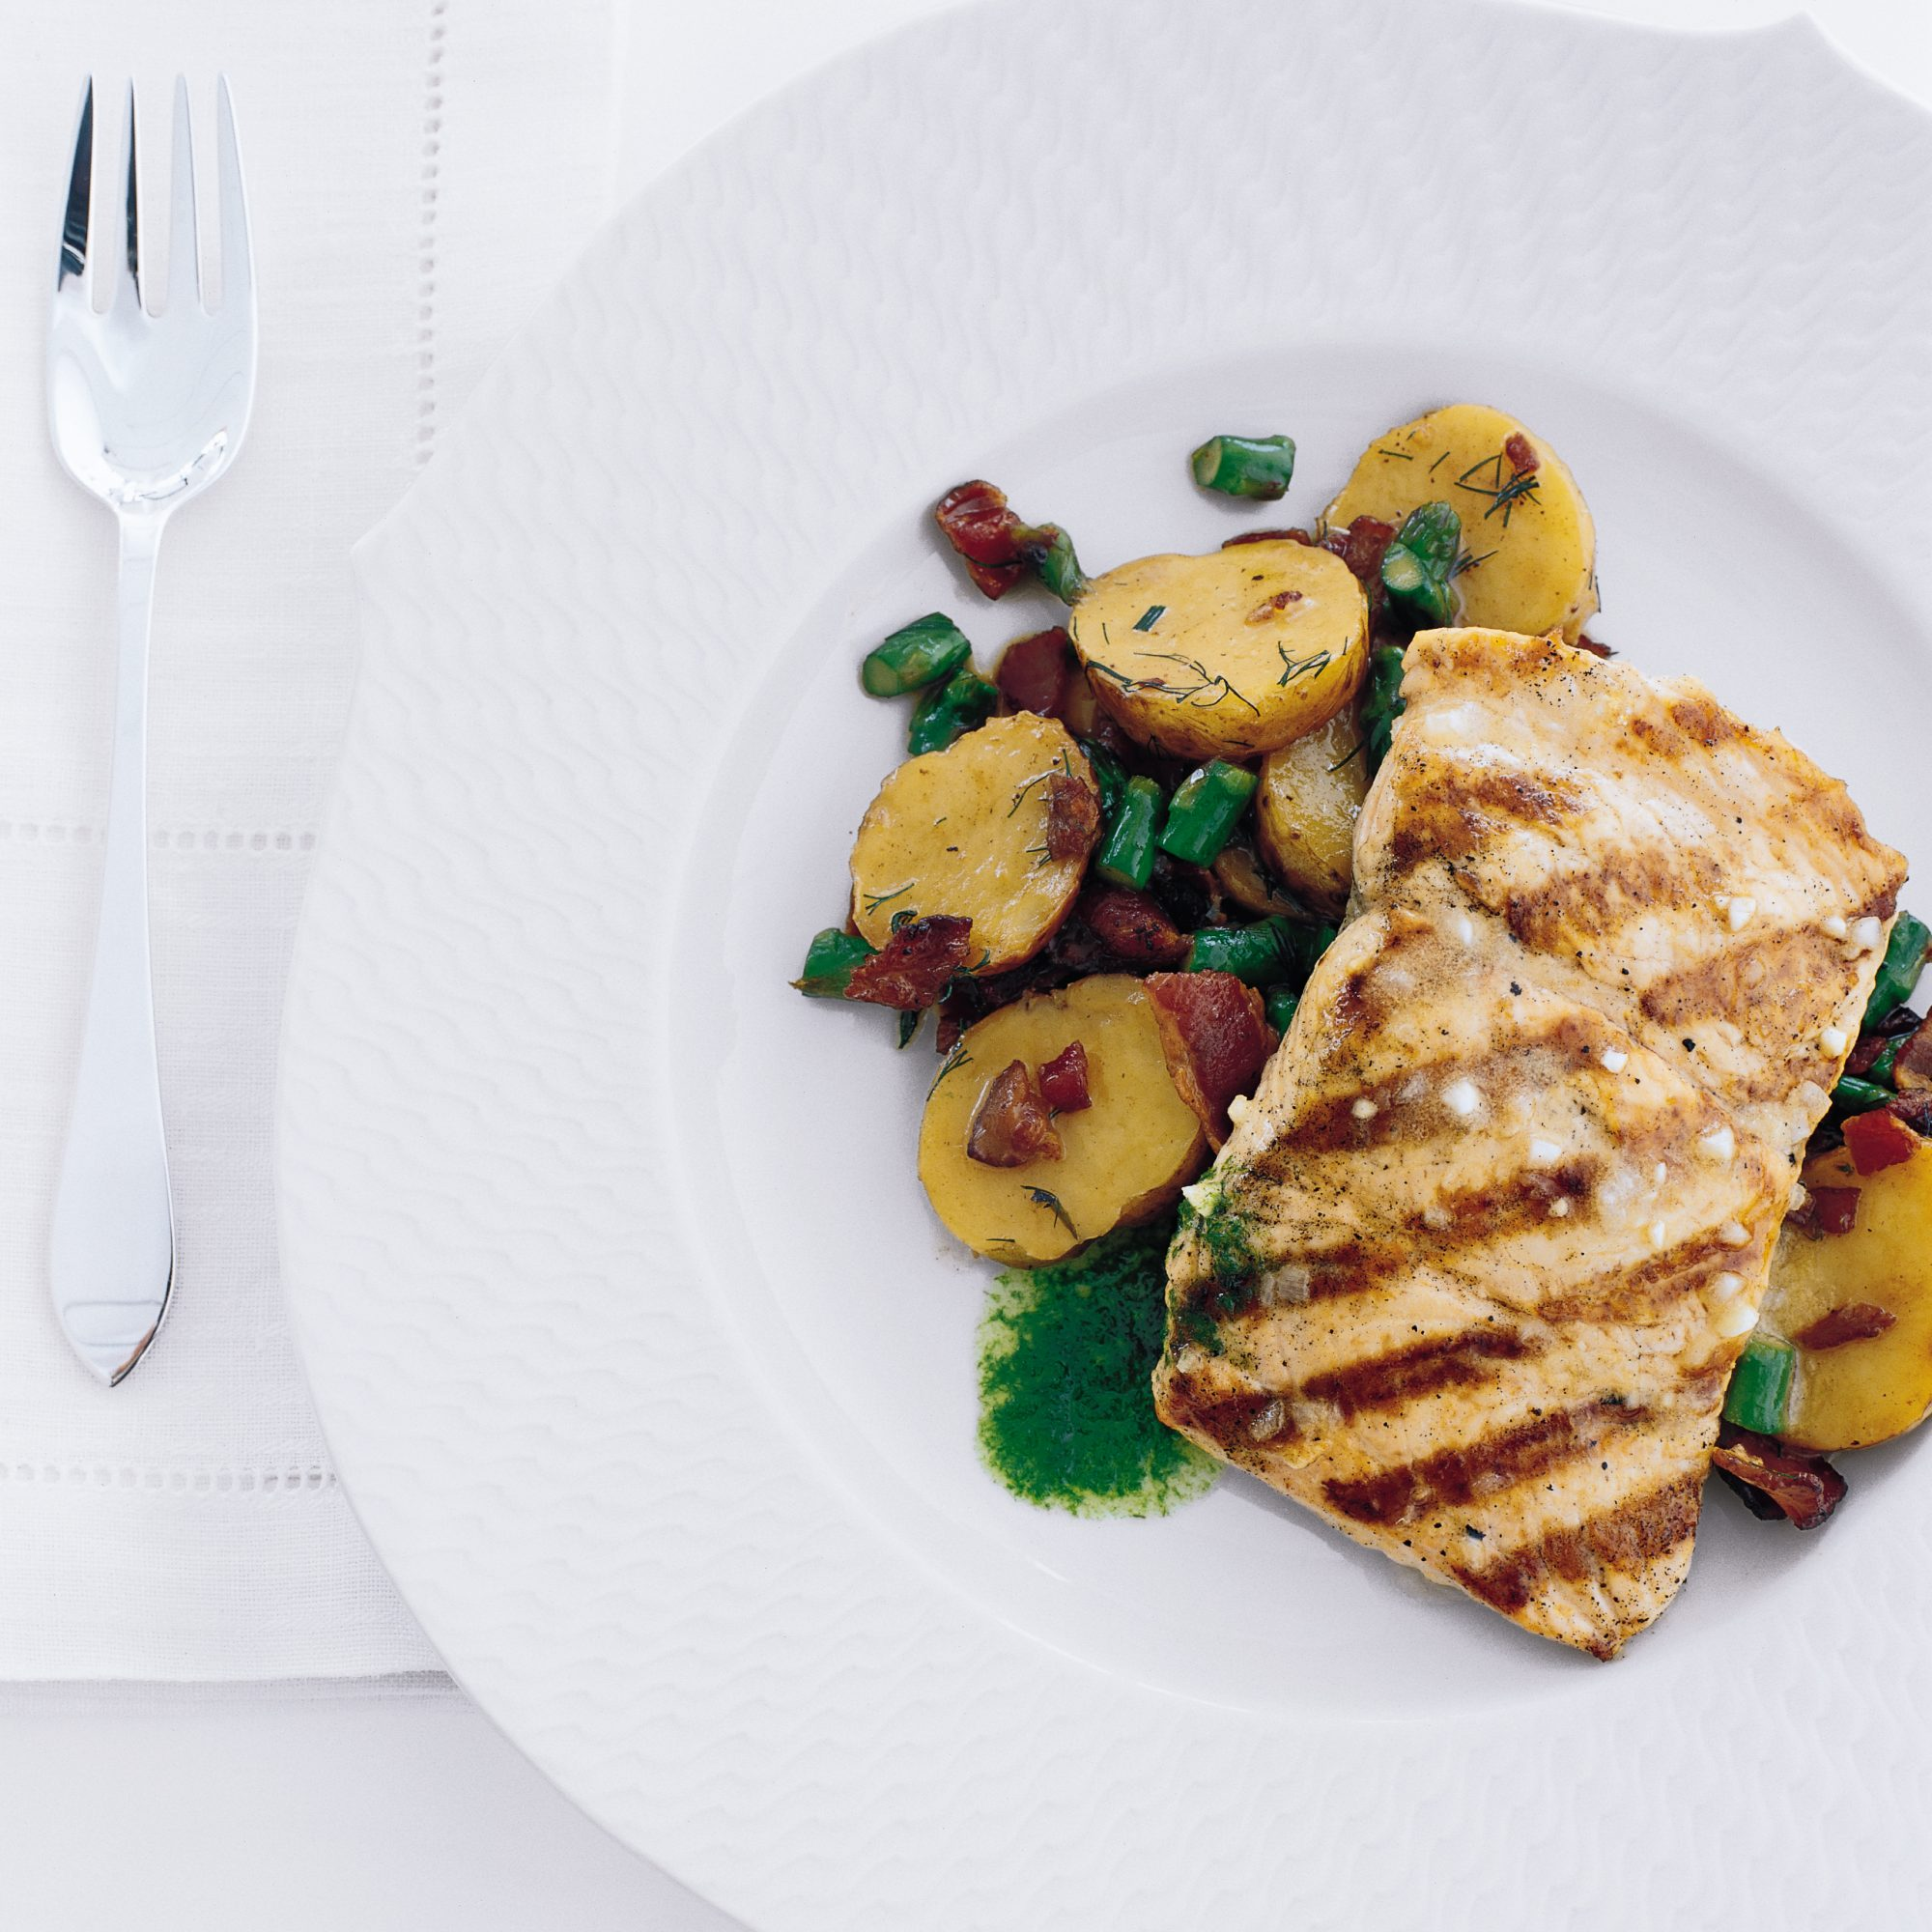 Curto's Grilled Salmon with Bacon and Potato Hash